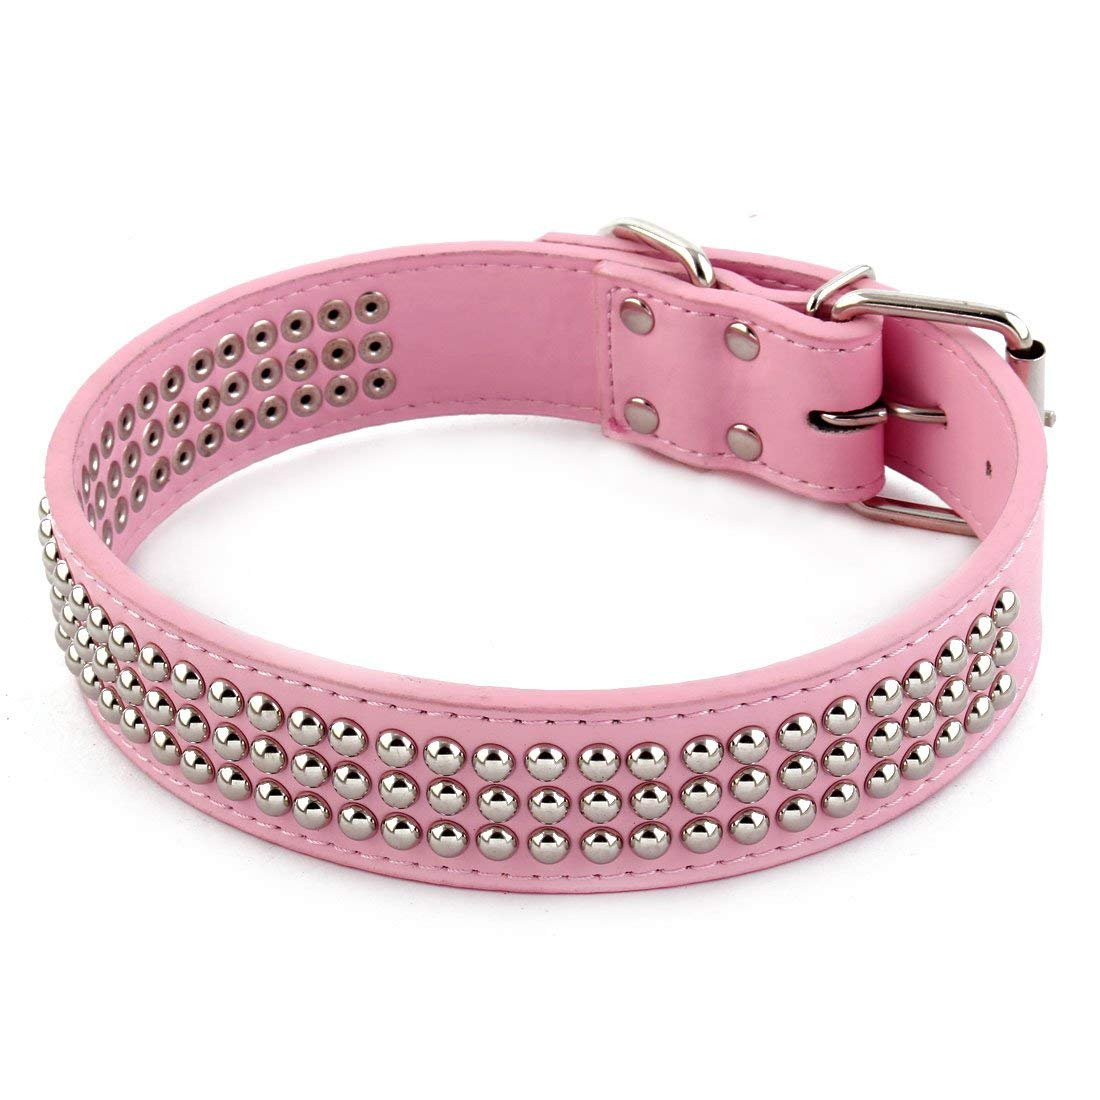 Faux Leather Pet Dog Training Adjustable Buckle Neck Collar Strap M Size Pink